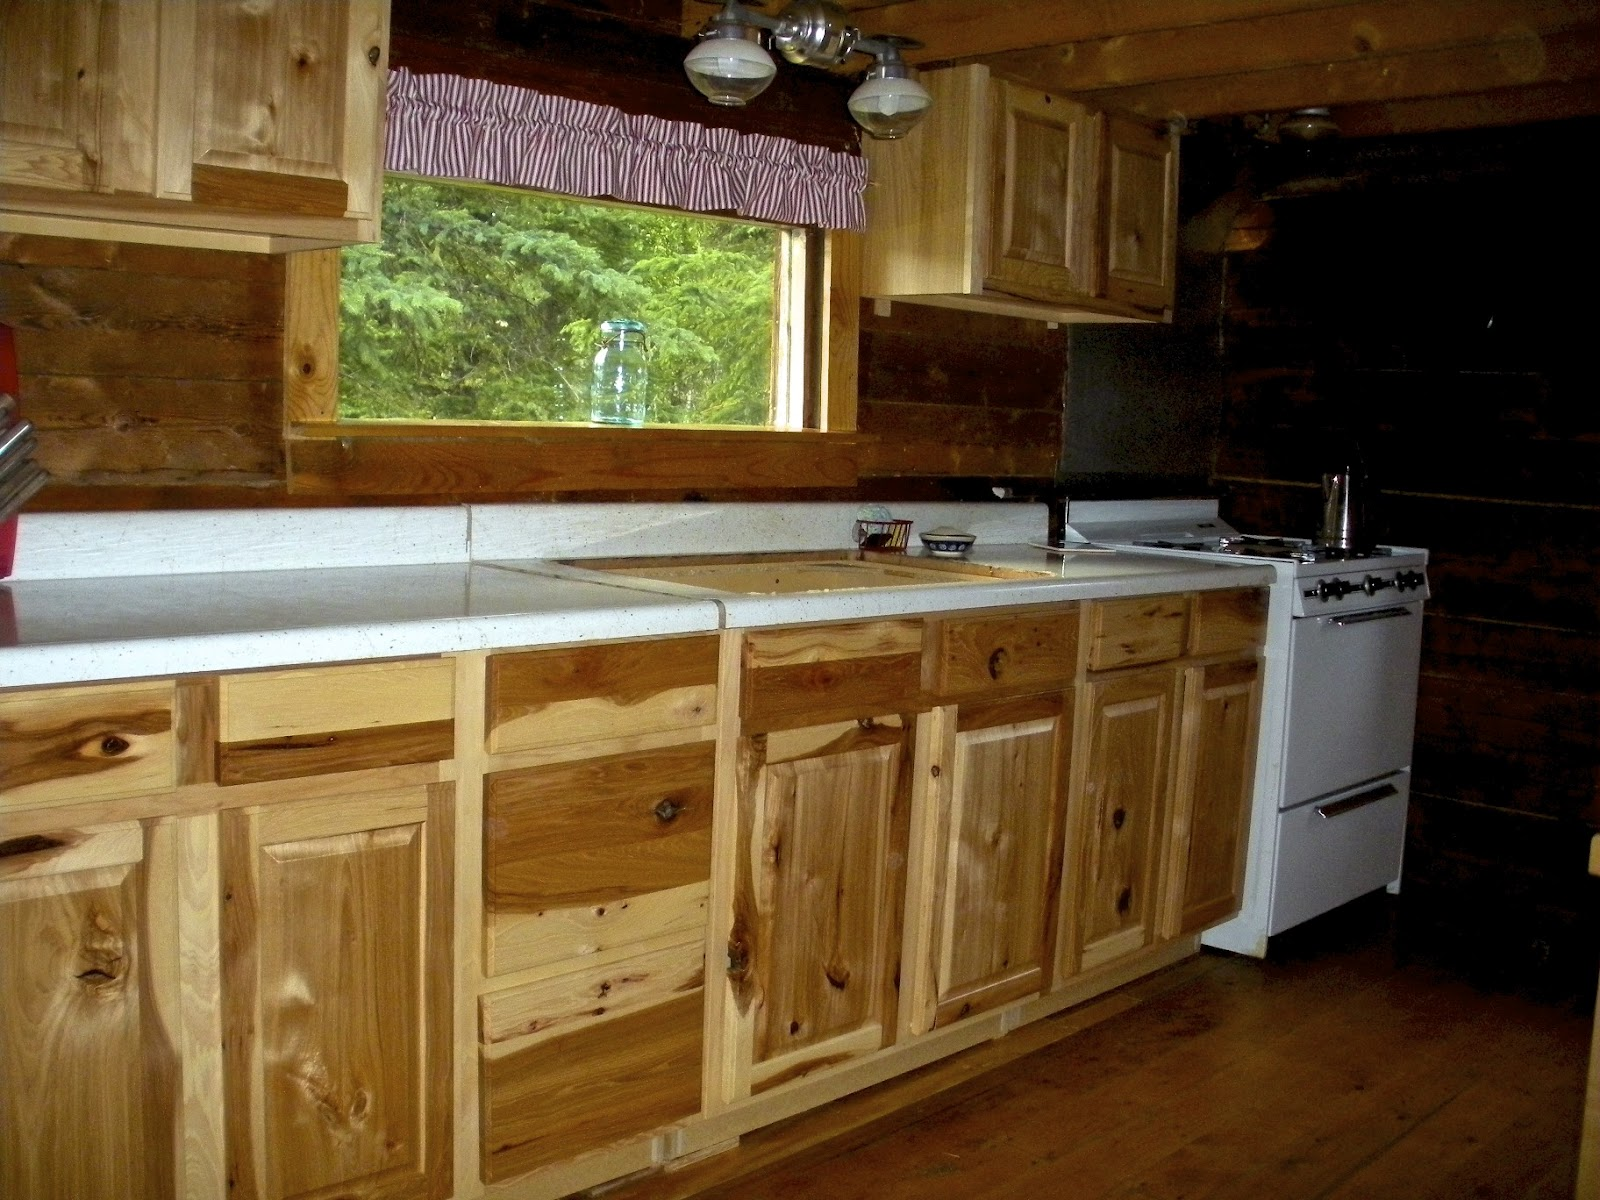 Lowes kitchen cabinets recommendation of the day home - Quality kitchen cabinets ...